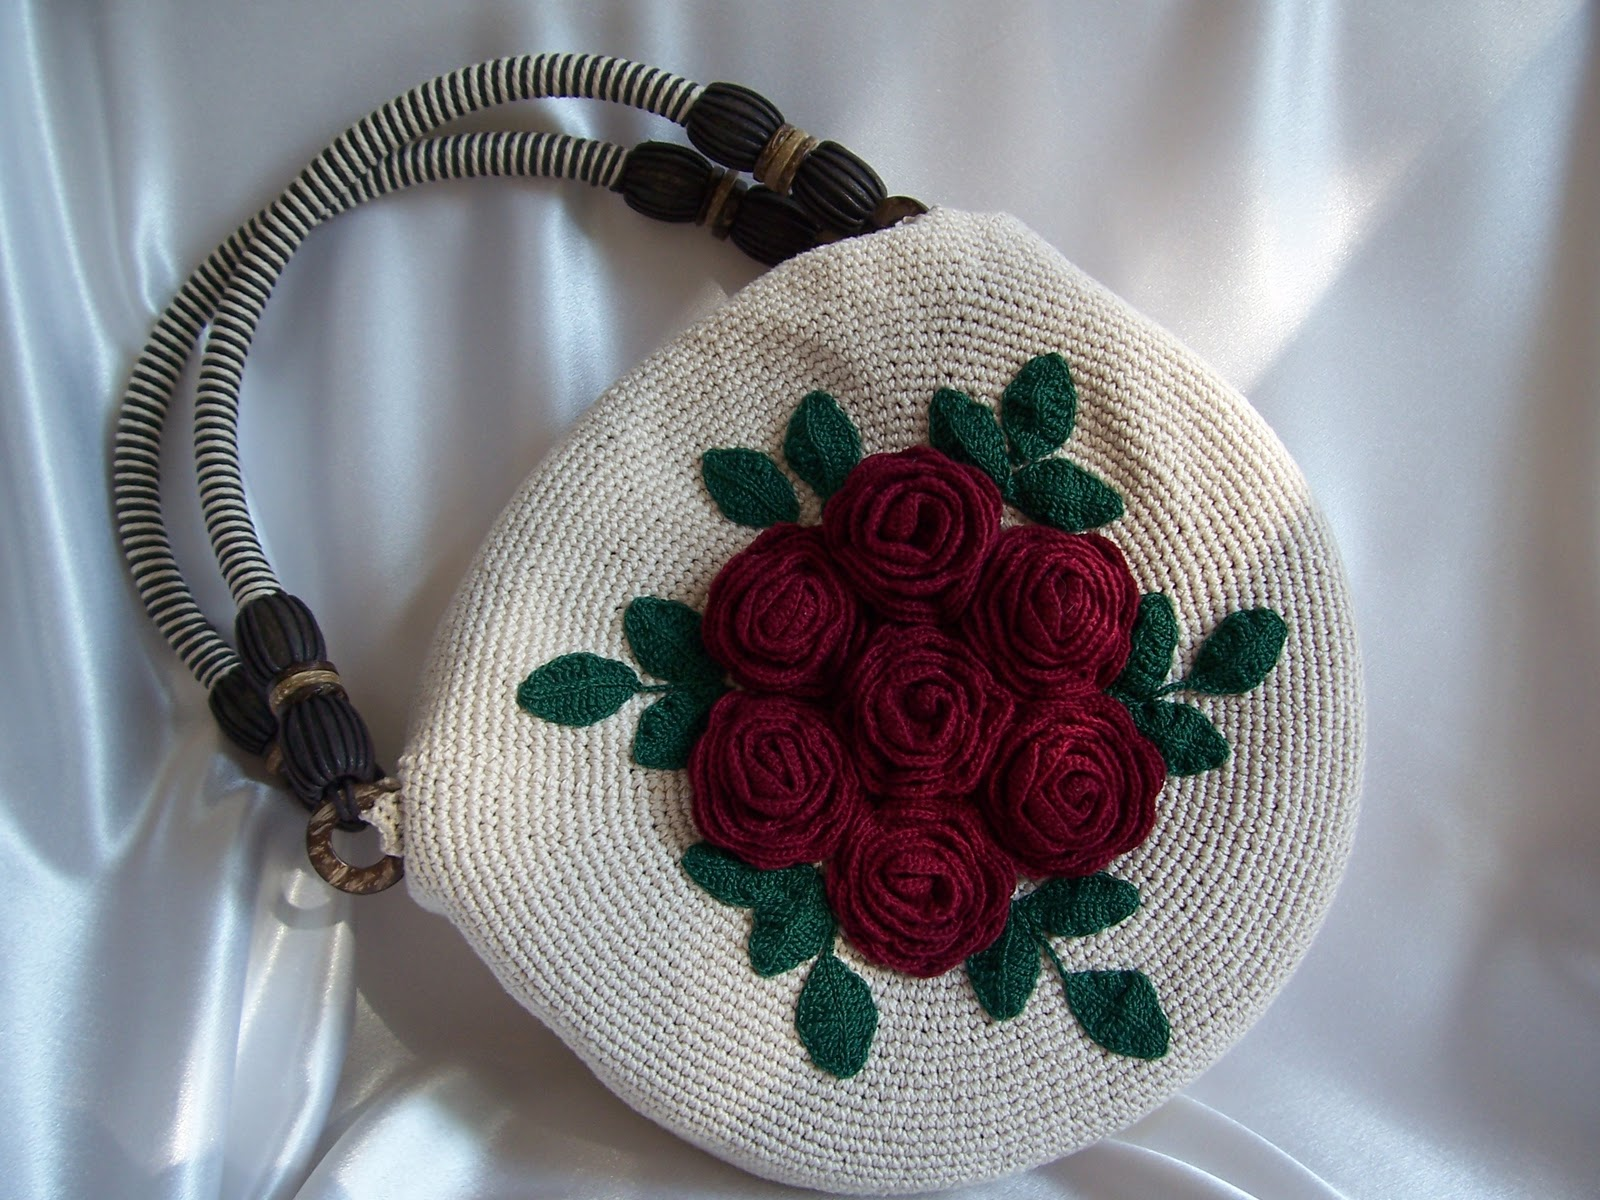 How To Make Crochet Purse : How to make a beautiful purse with flower decoration. Free pattern.